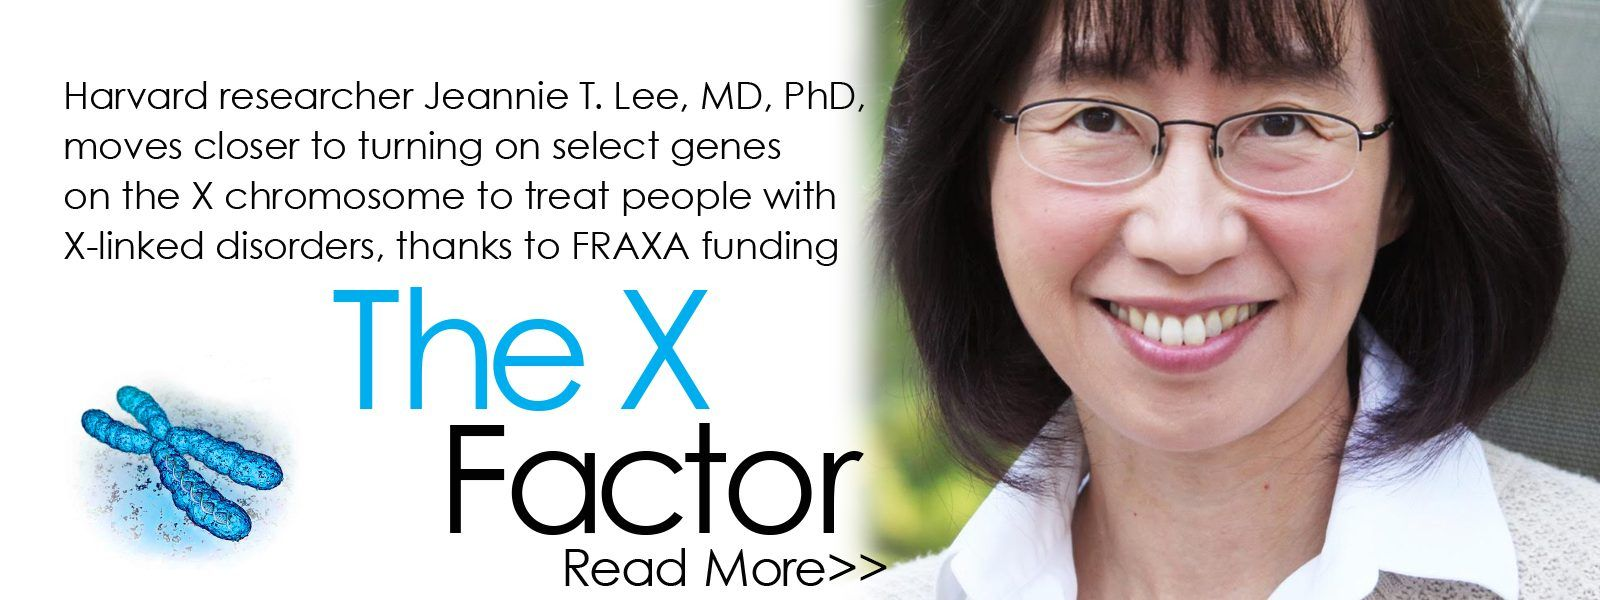 The X Factor – Turning on X Chromosome Genes to Treat X-linked Disorders